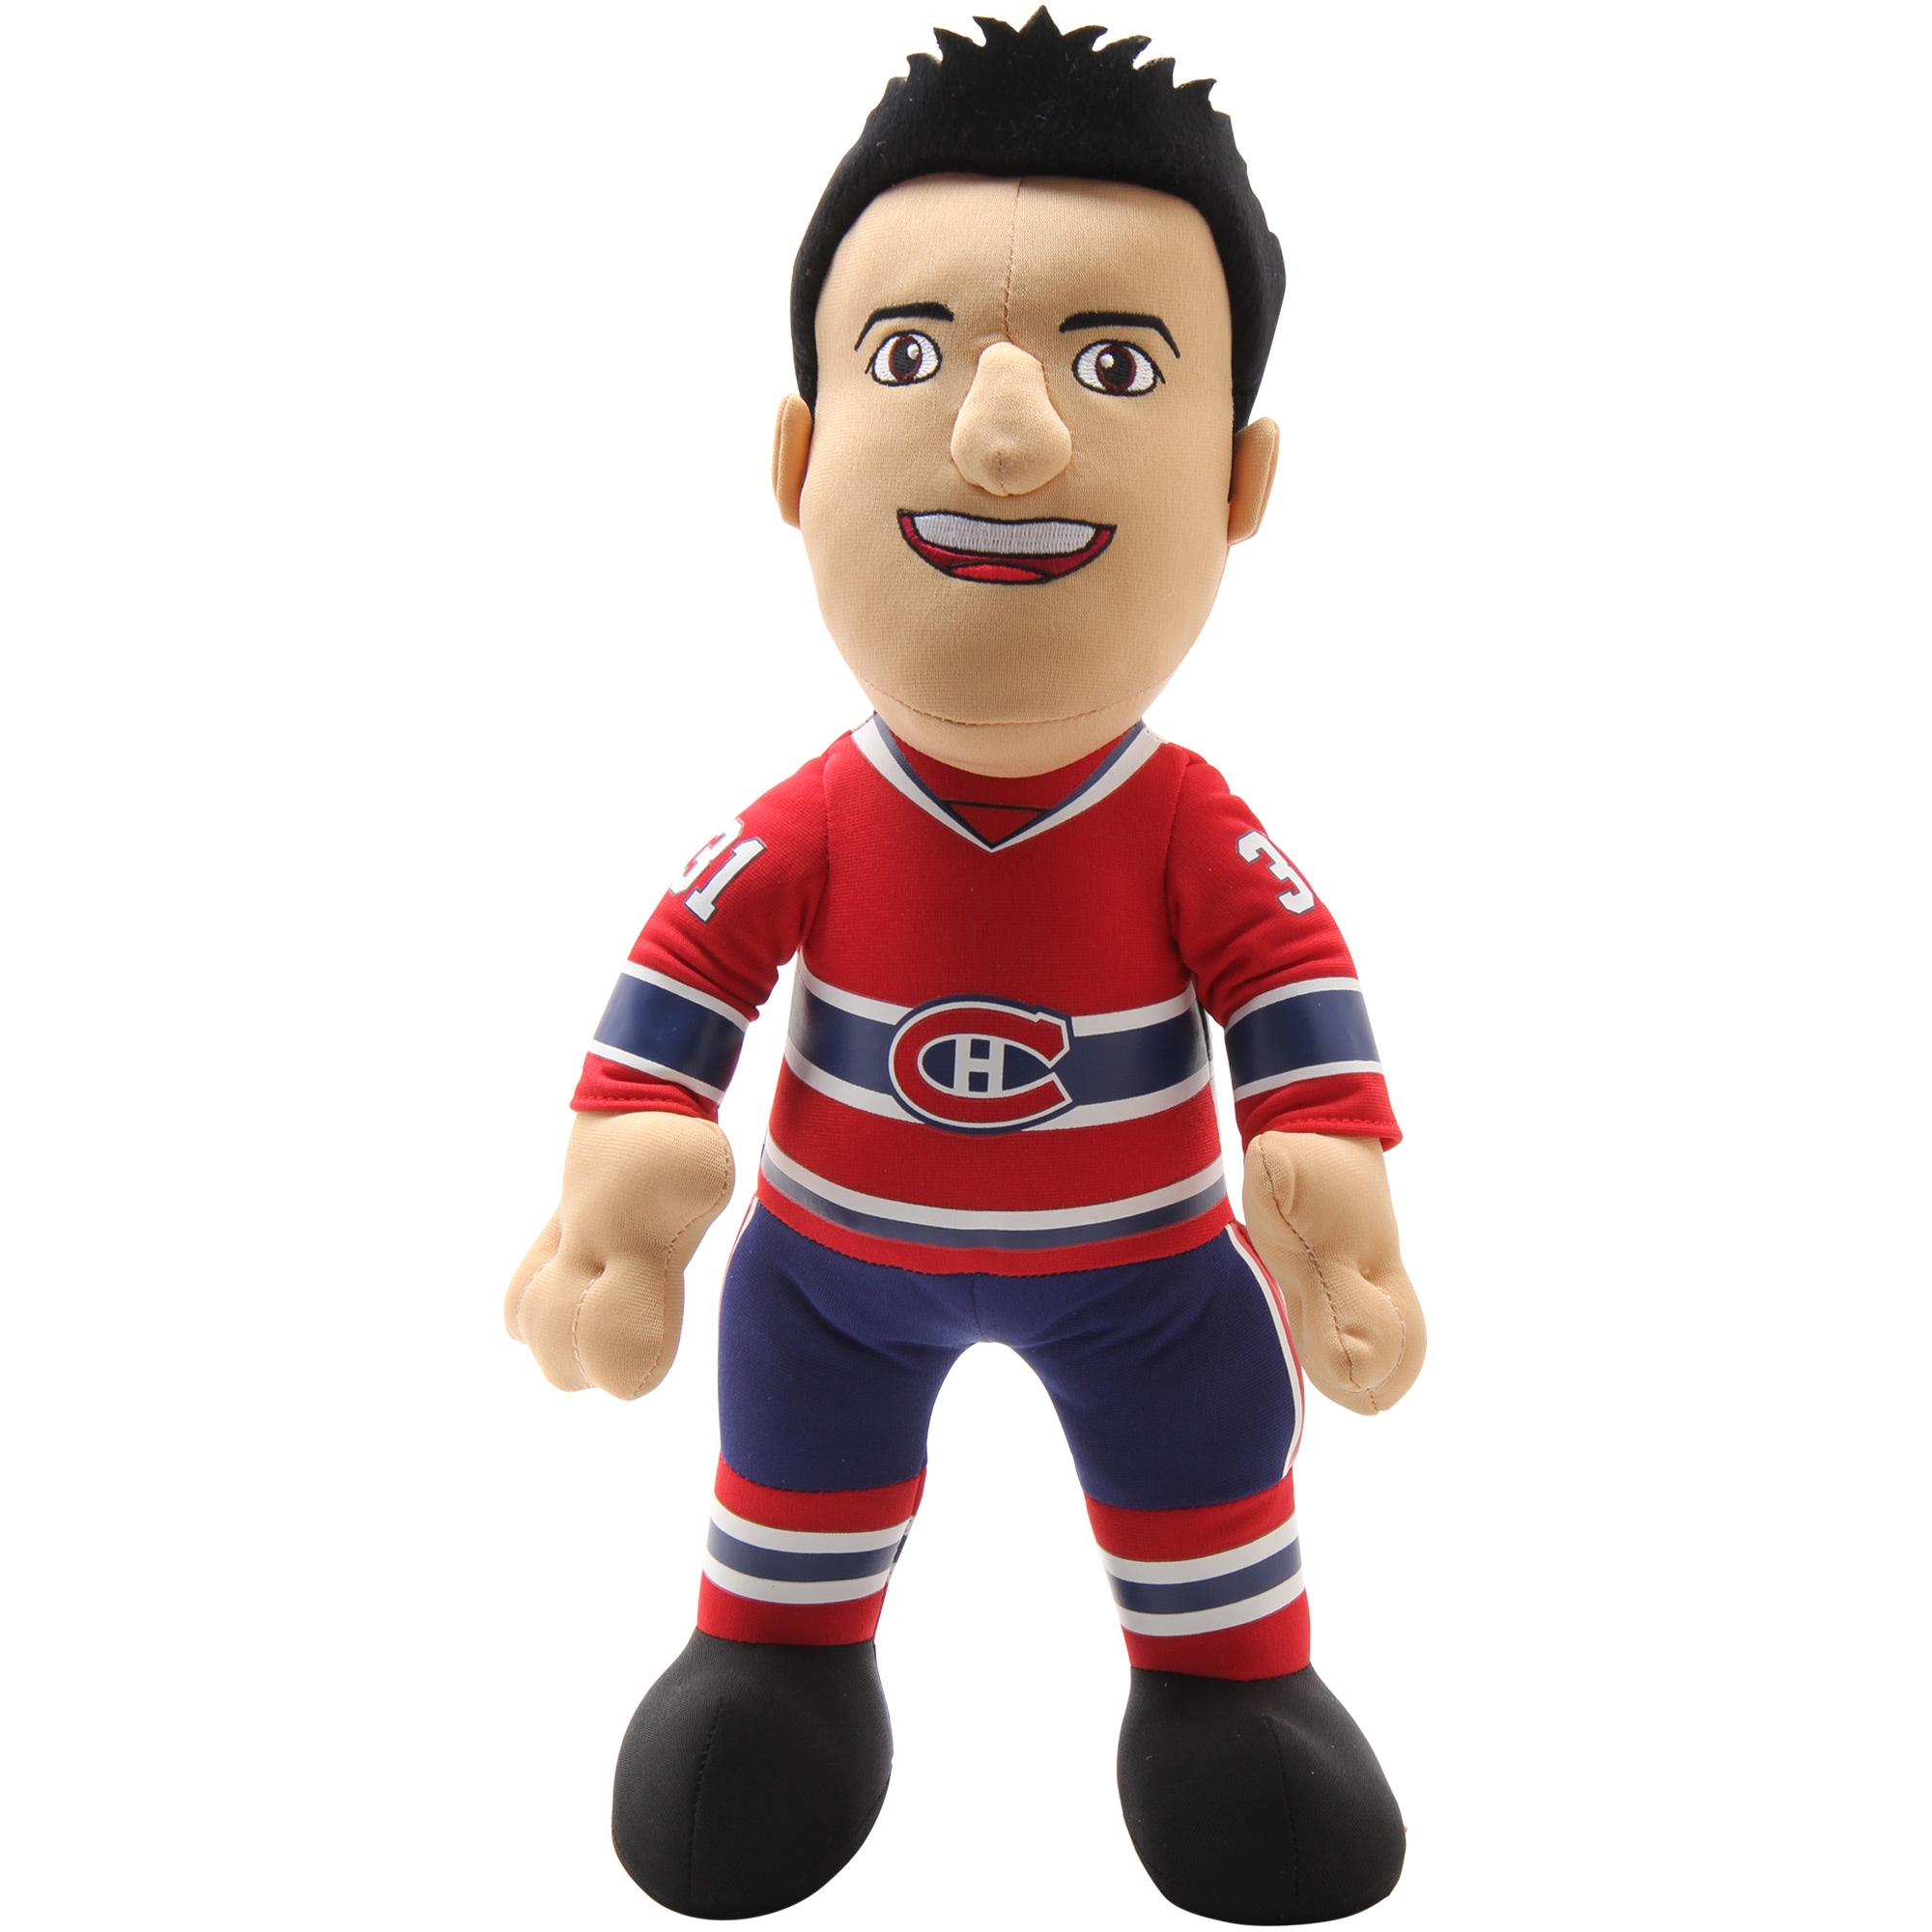 "Carey Price Montreal Canadiens 10"" Player Plush Doll - No Size"